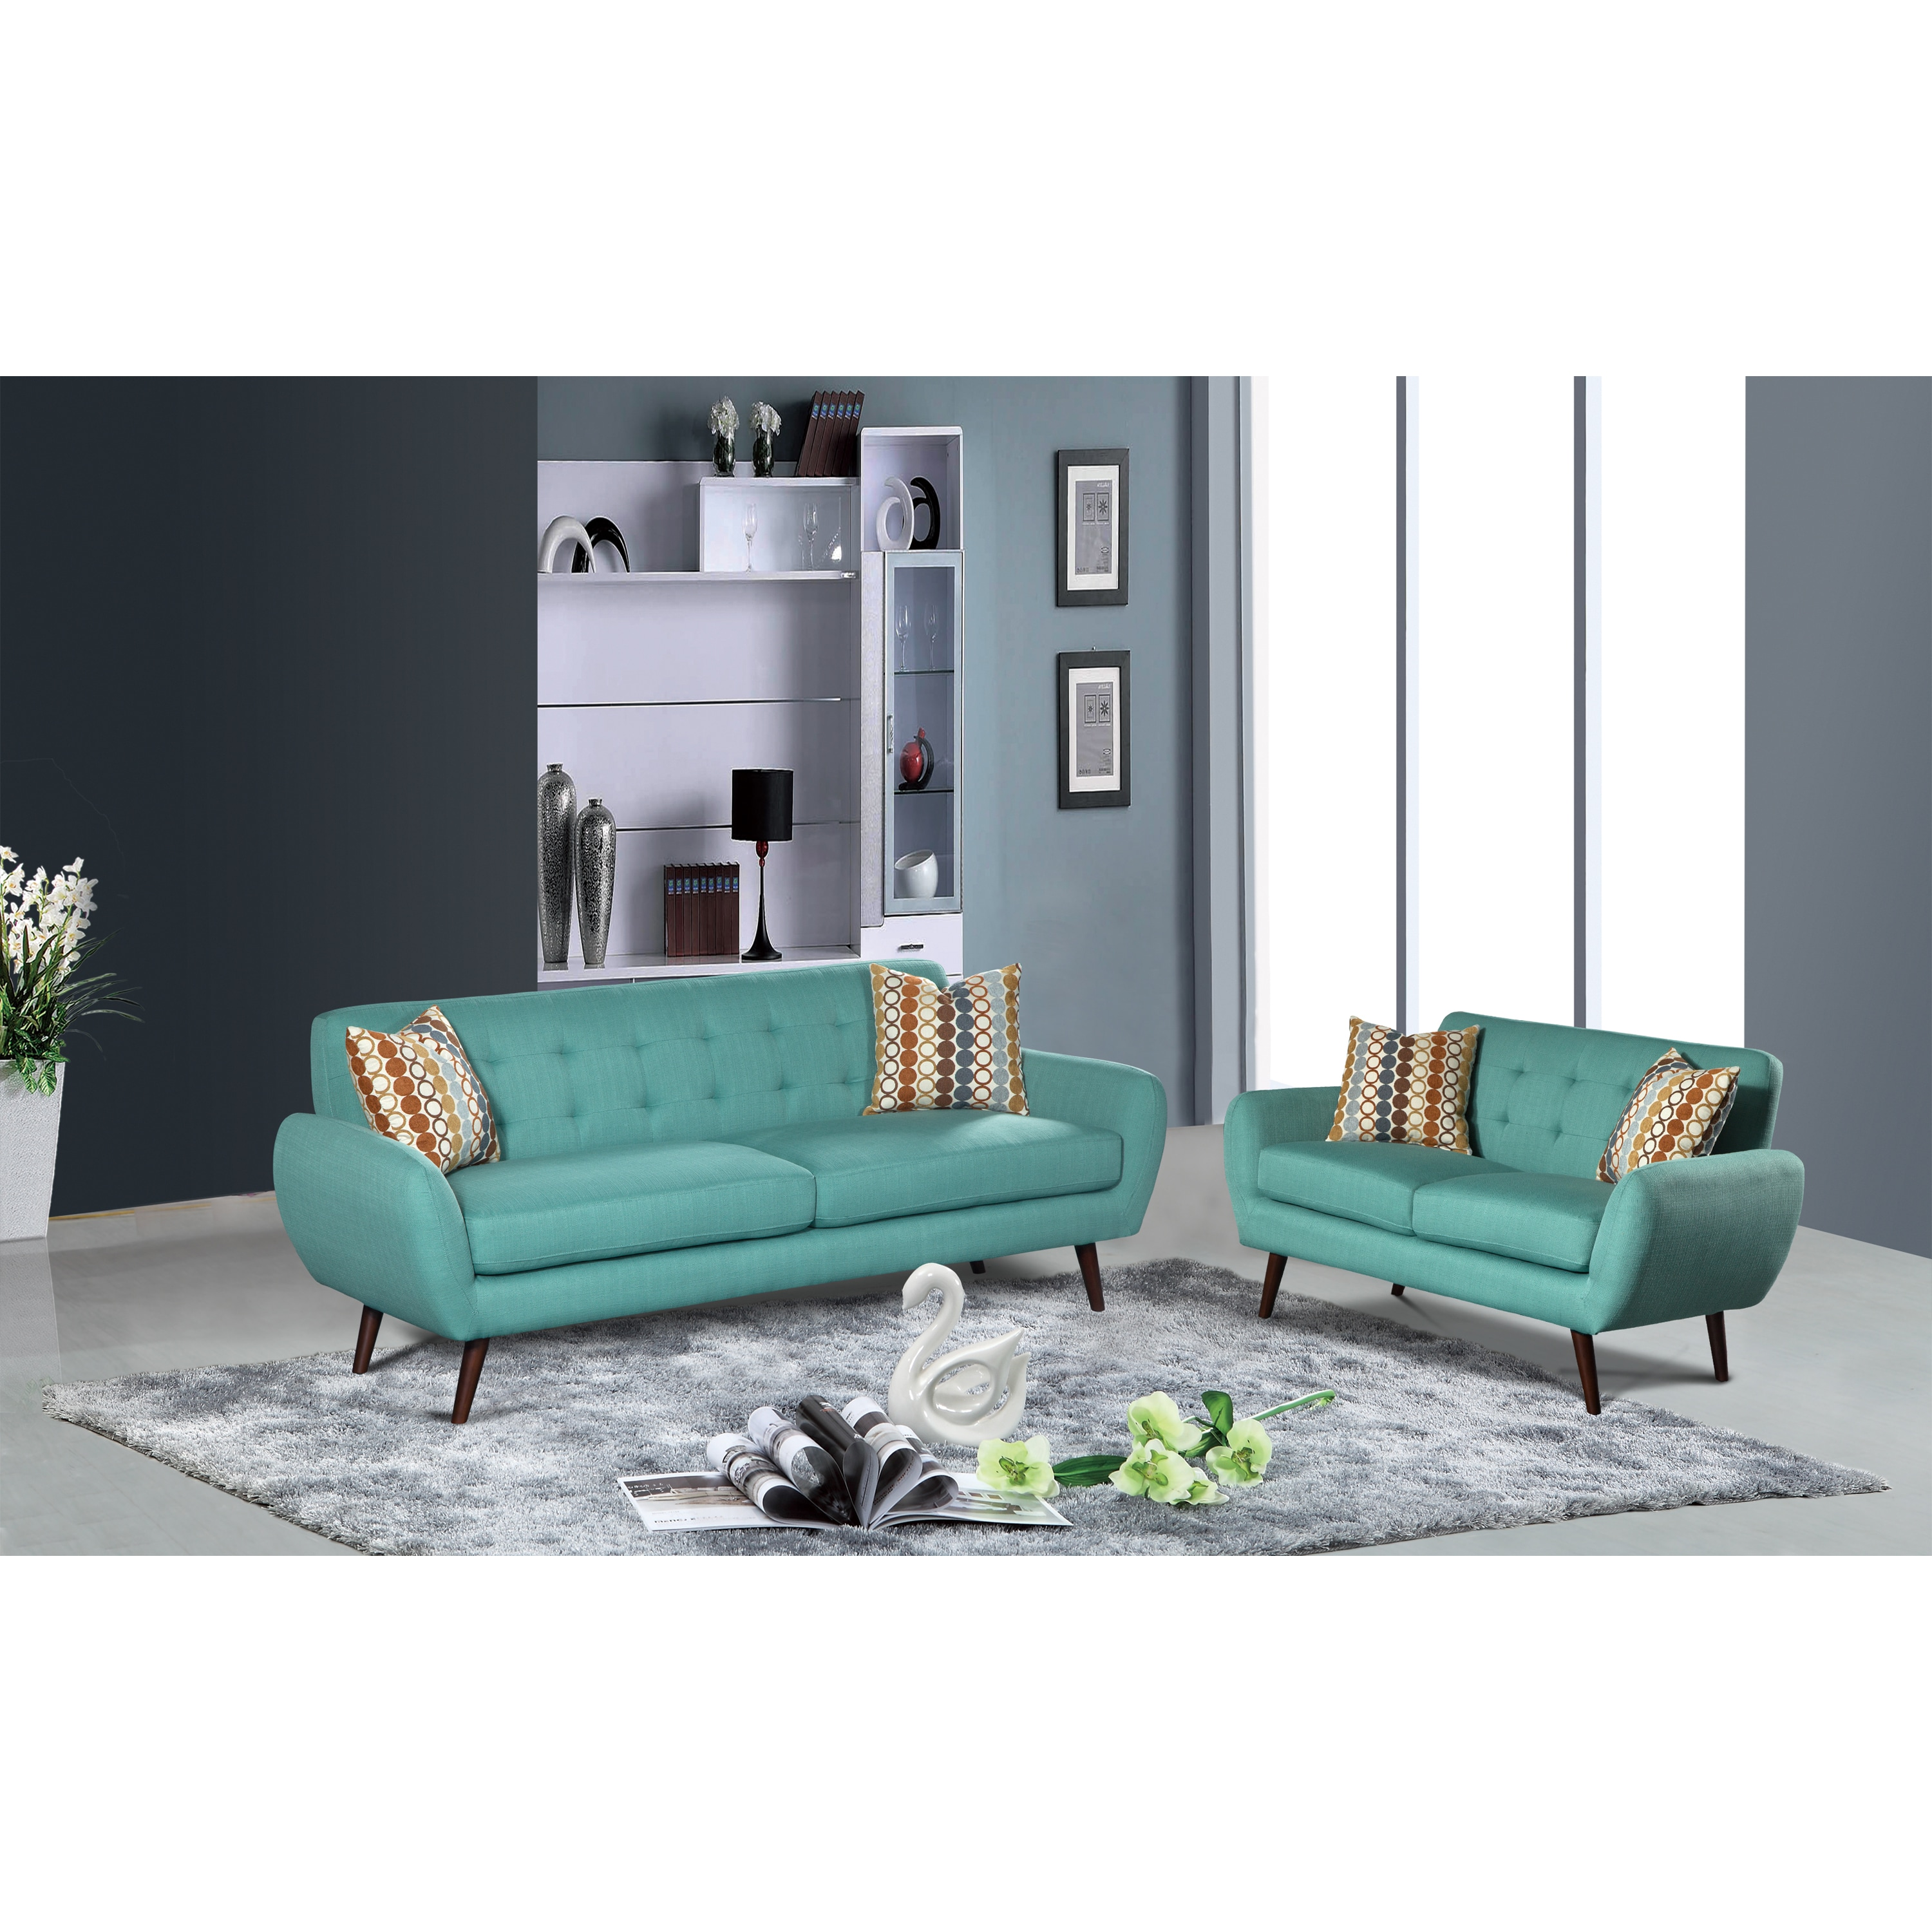 Pleasant Alayna 2 Pc Linen Mid Century Living Room Sofa Set Inzonedesignstudio Interior Chair Design Inzonedesignstudiocom